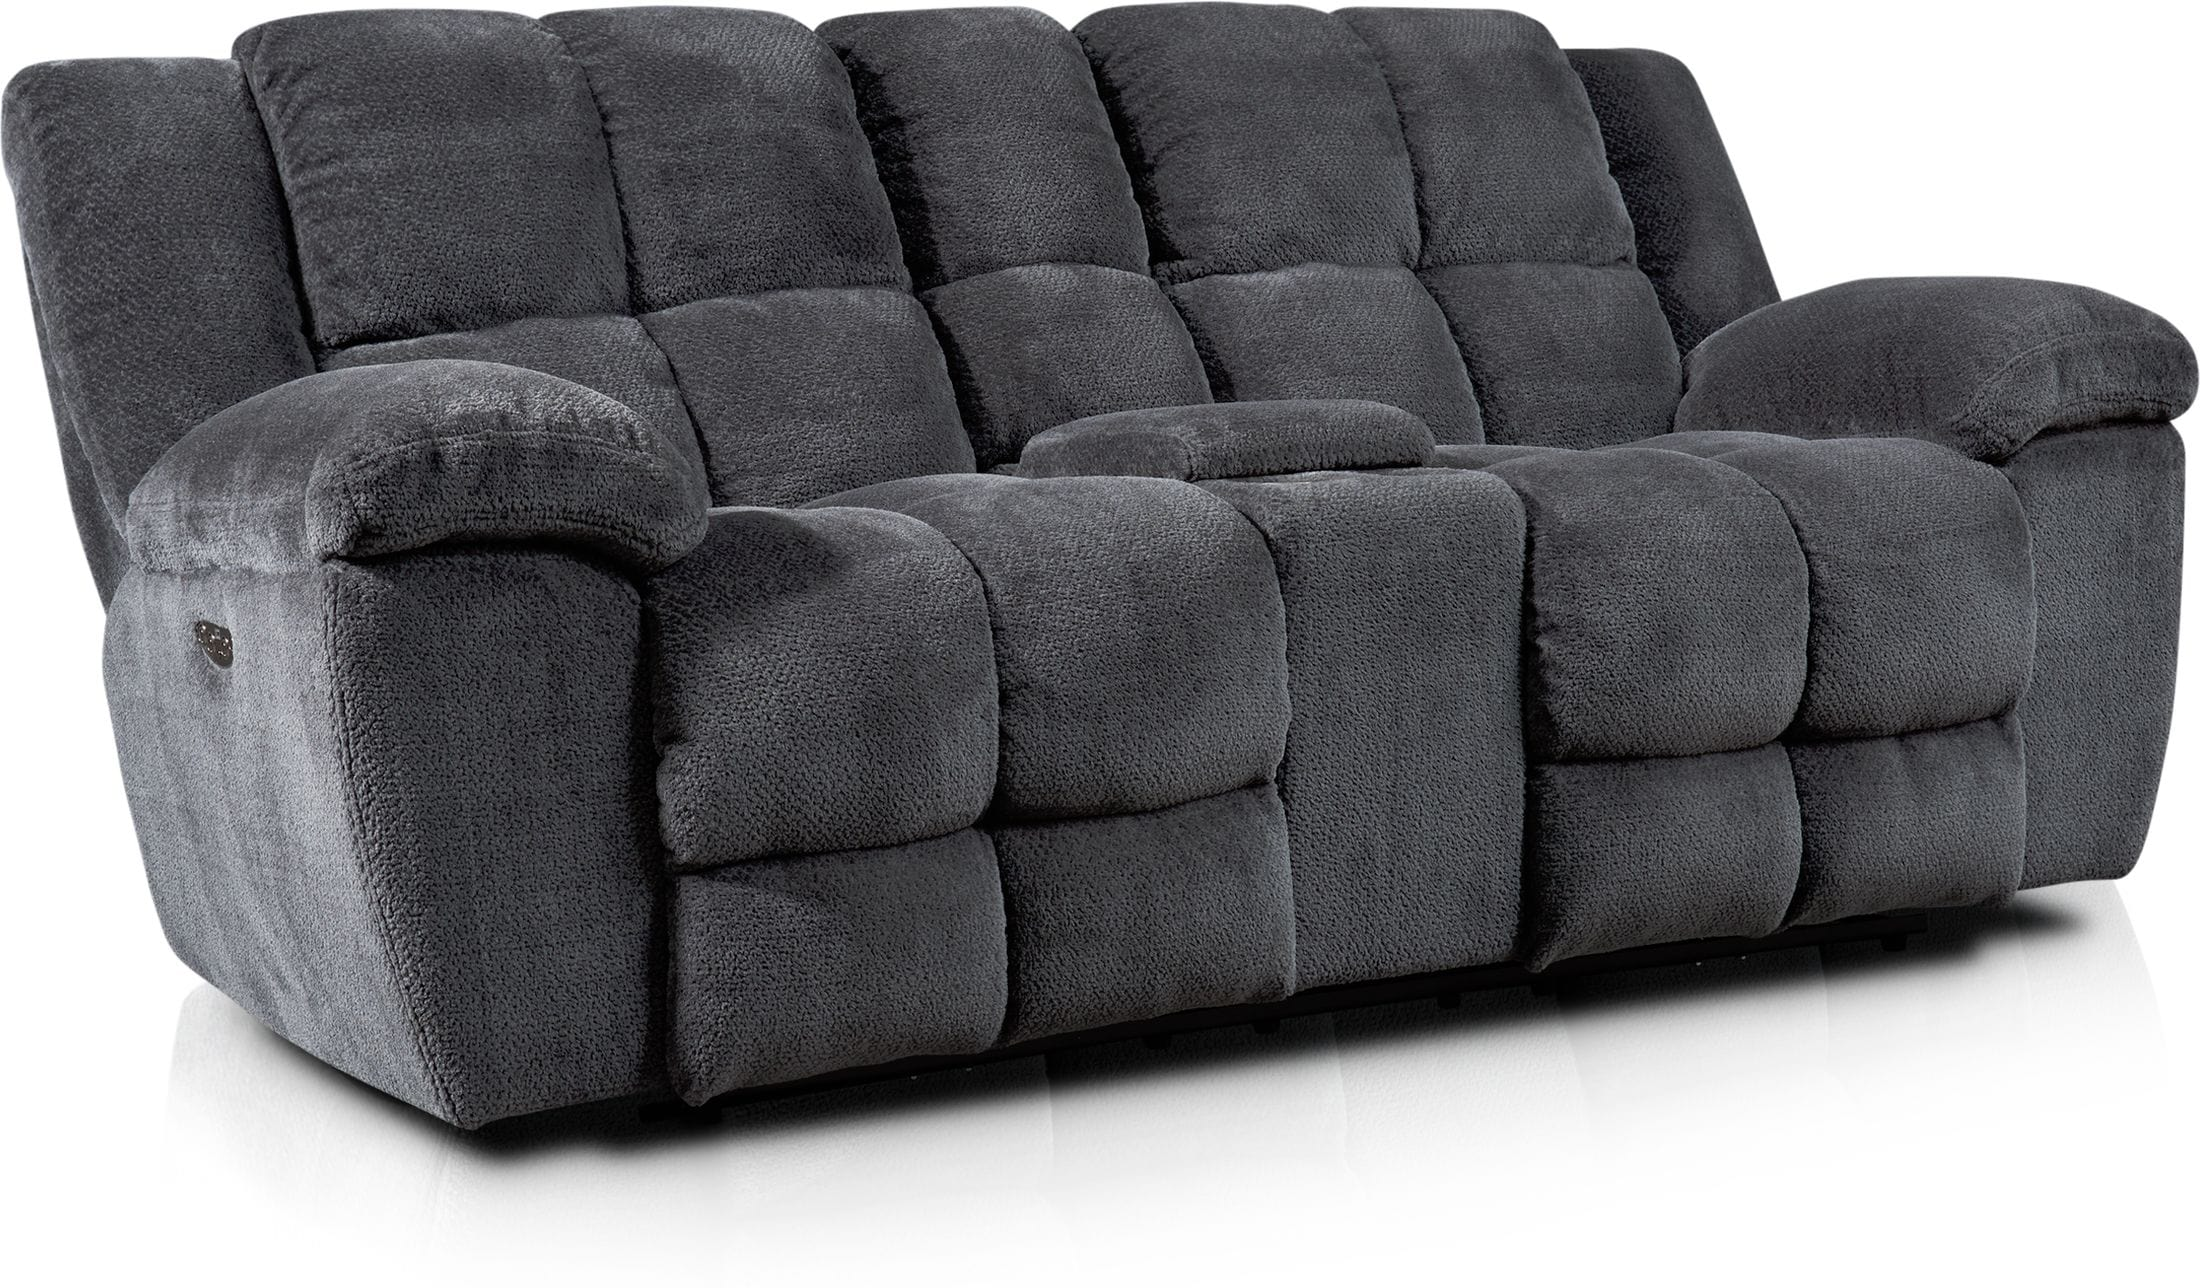 Living Room Furniture - Mellow Dual-Power Reclining Loveseat - Gray